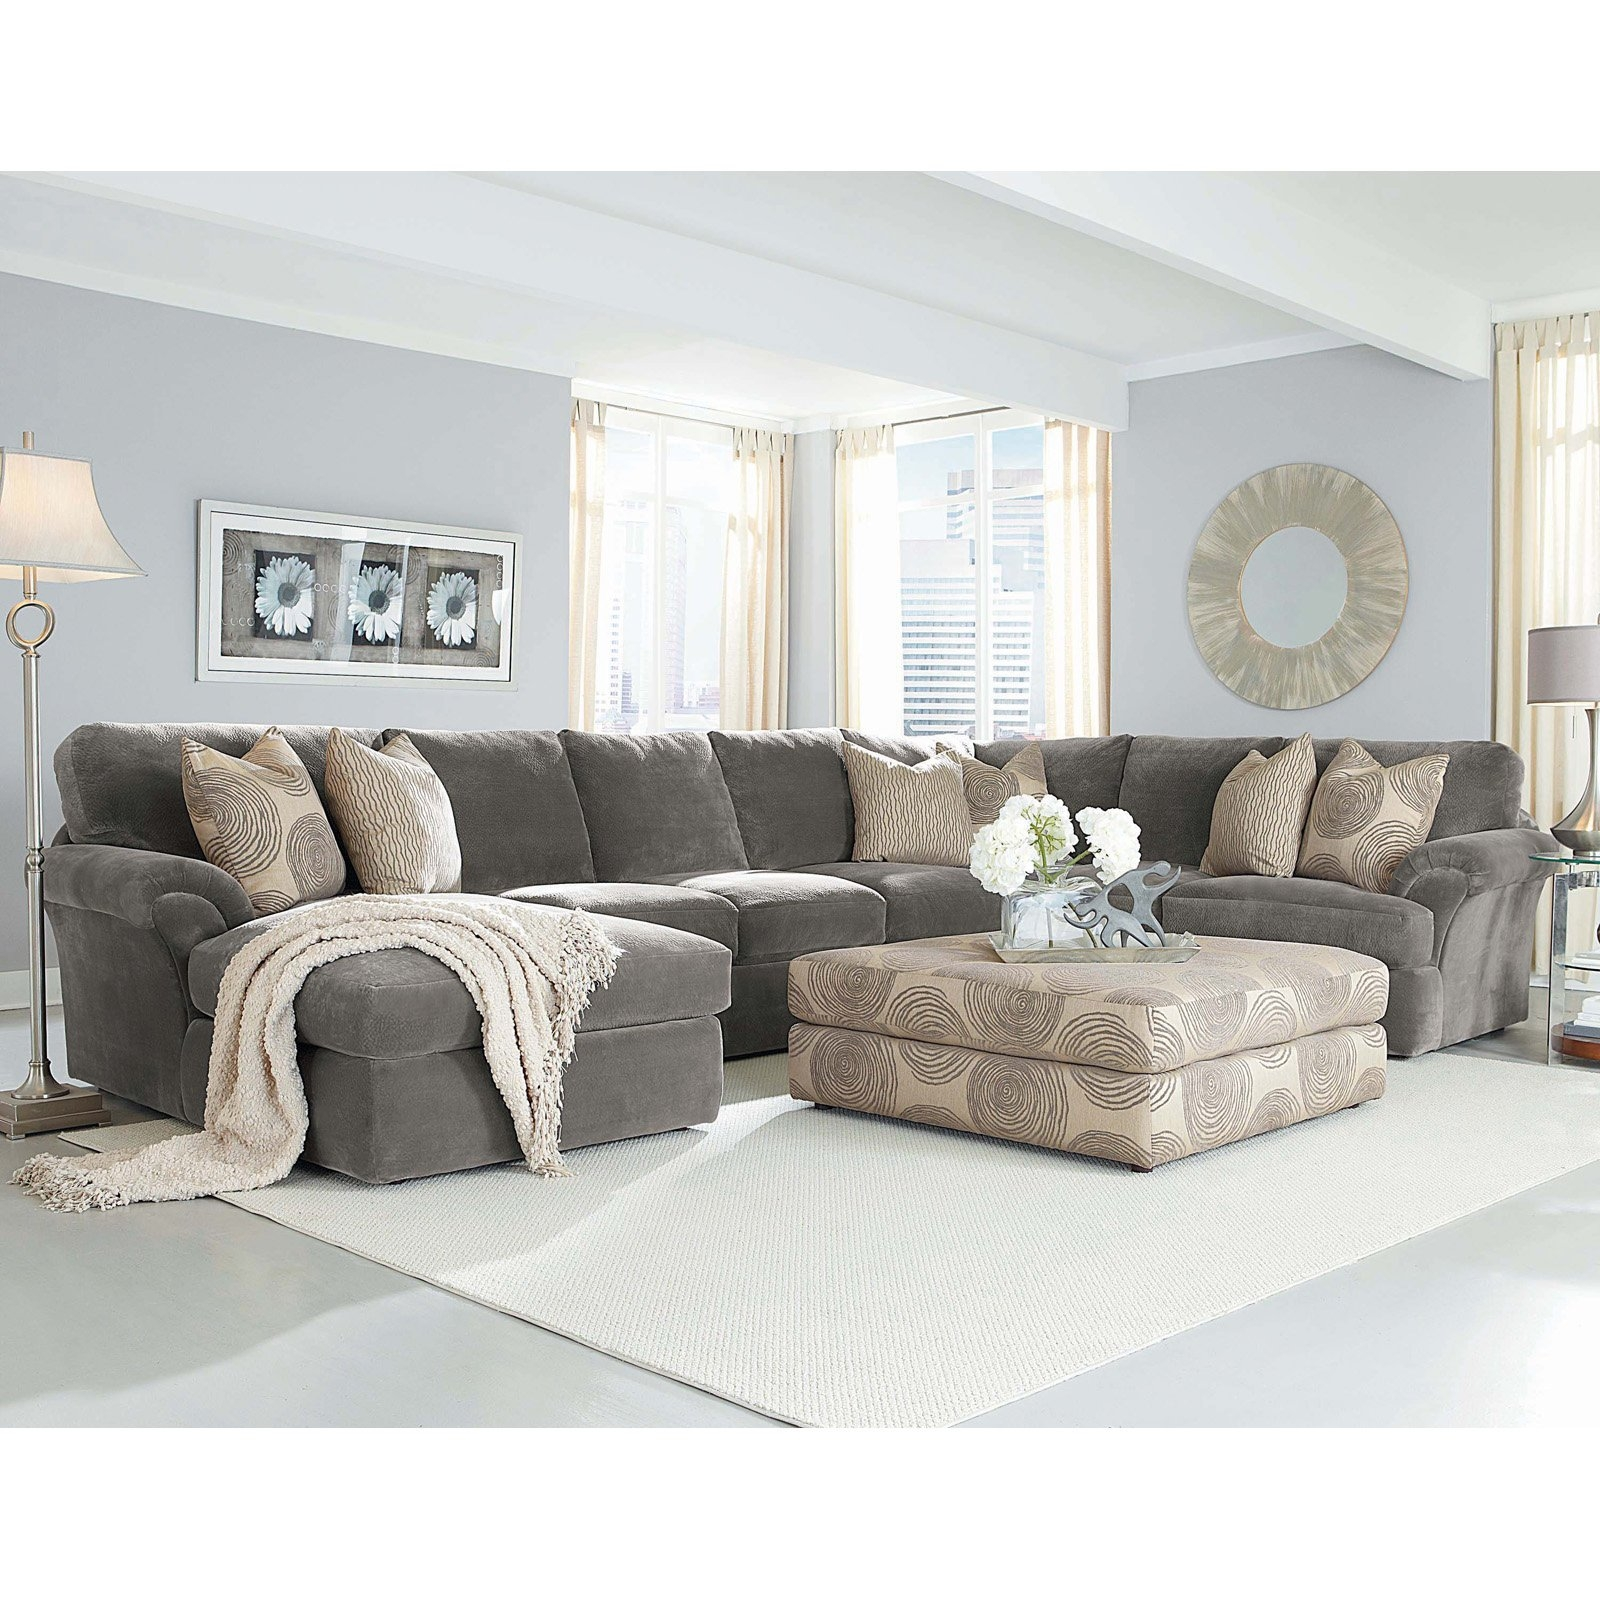 15 Collection of Champion Sectional Sofa